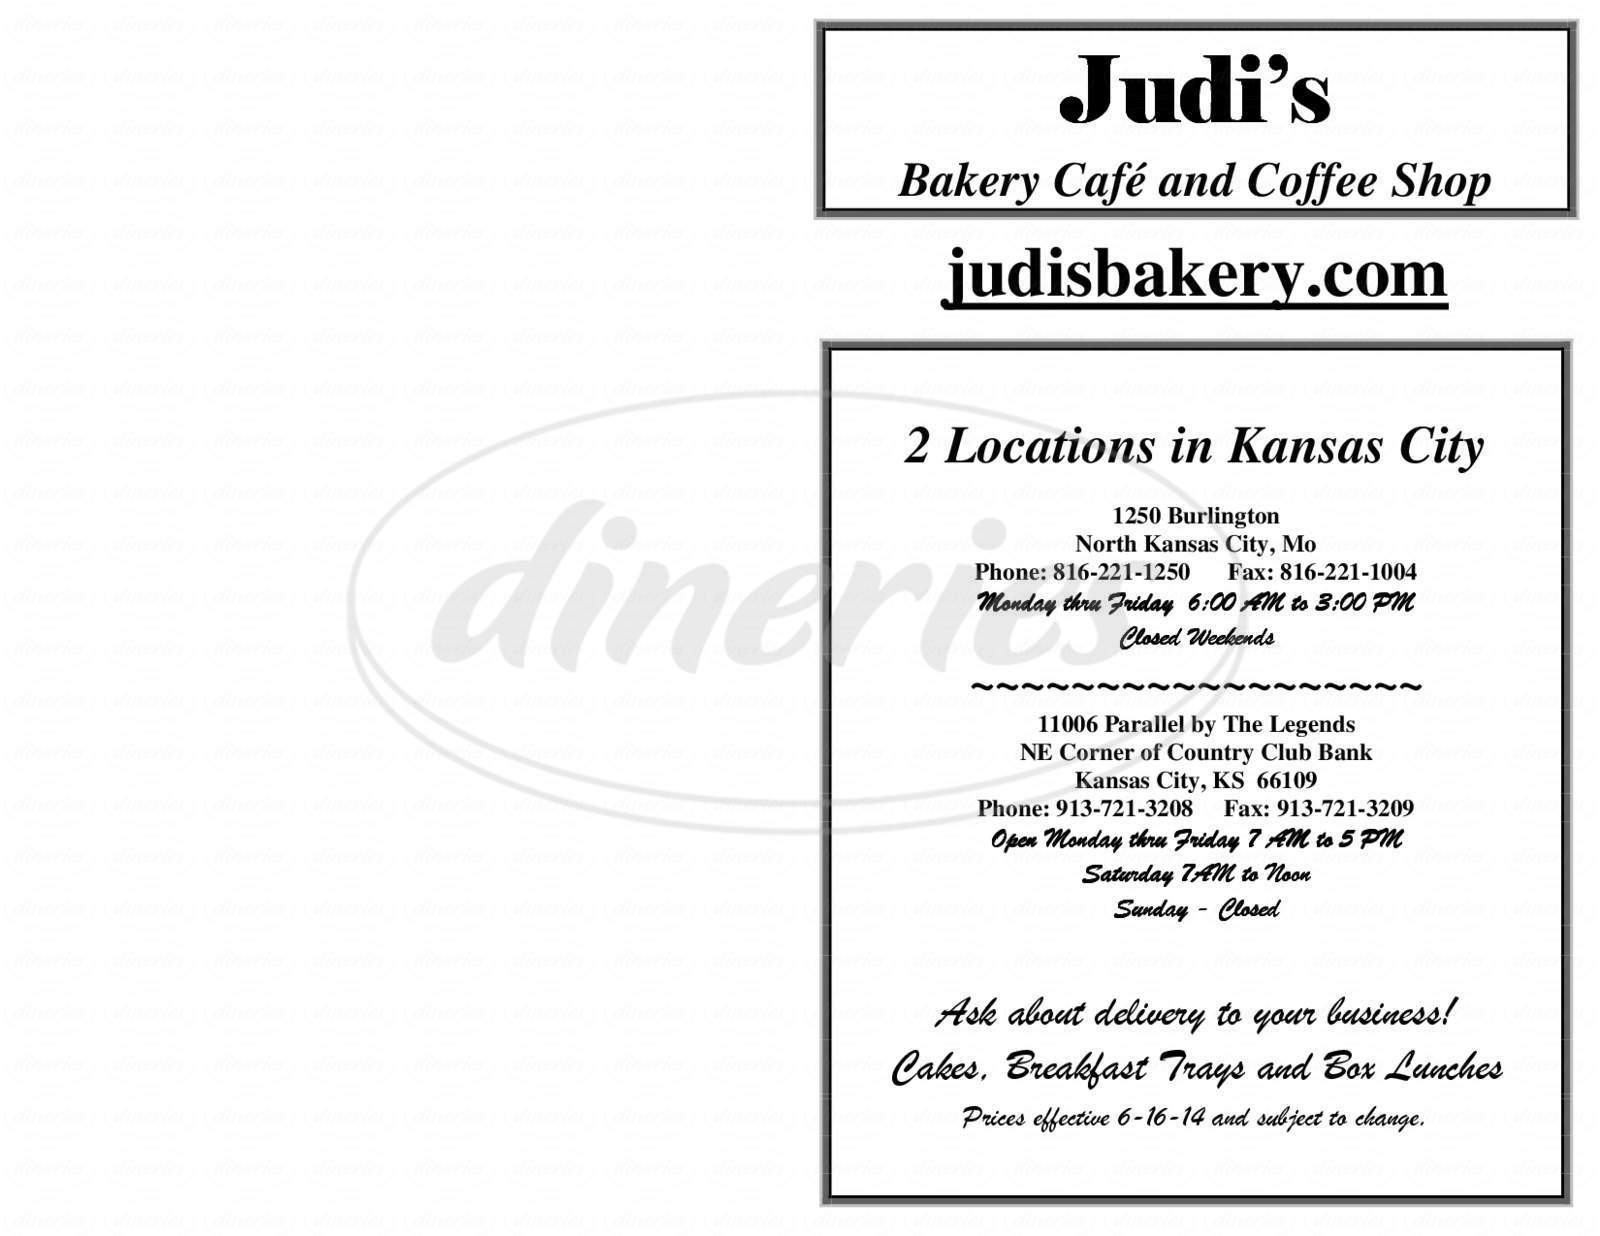 menu for Judi's Bakery Cafe & Coffee Shop